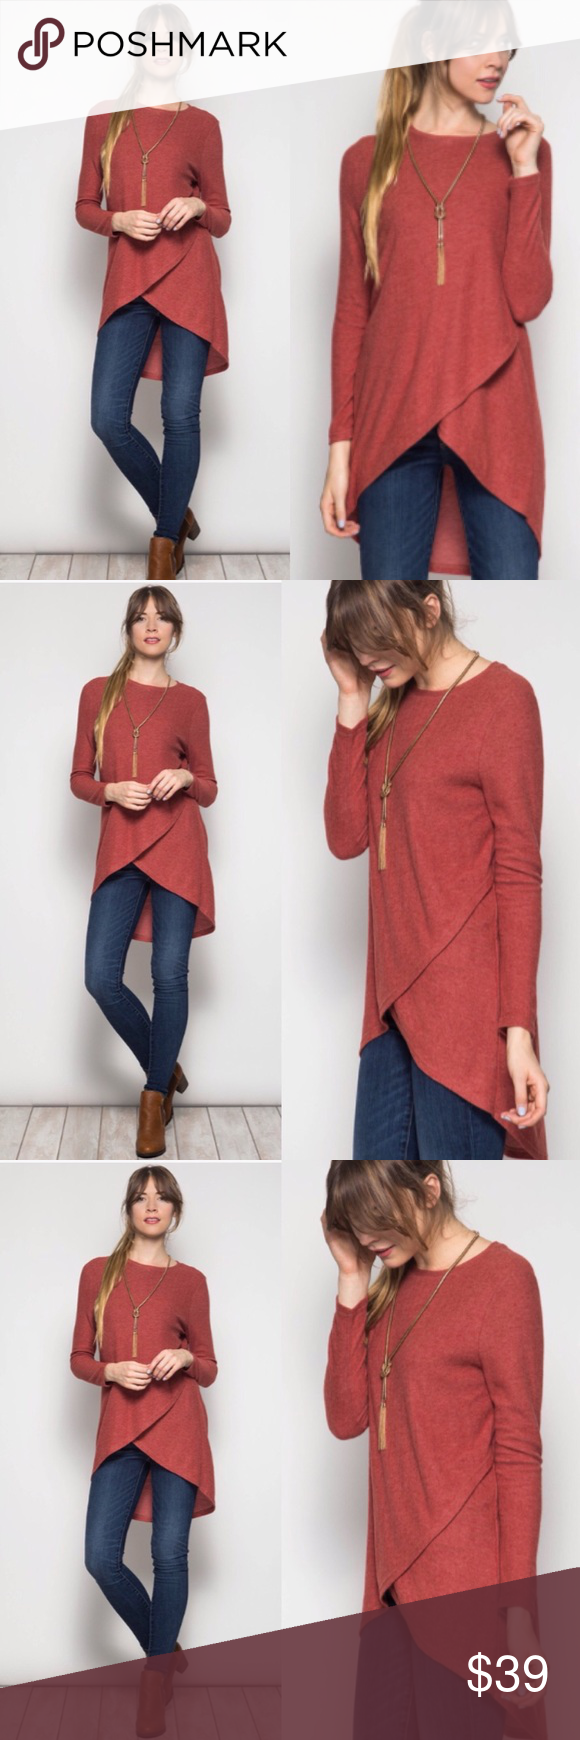 b4107c70dbb ❣️LAST-M❣️Beautiful Rust Color Tulip Cut Tunic Top Super chic and perfect  color for the season! Brand new. Sizes S M L and runs true to women's  sizing.